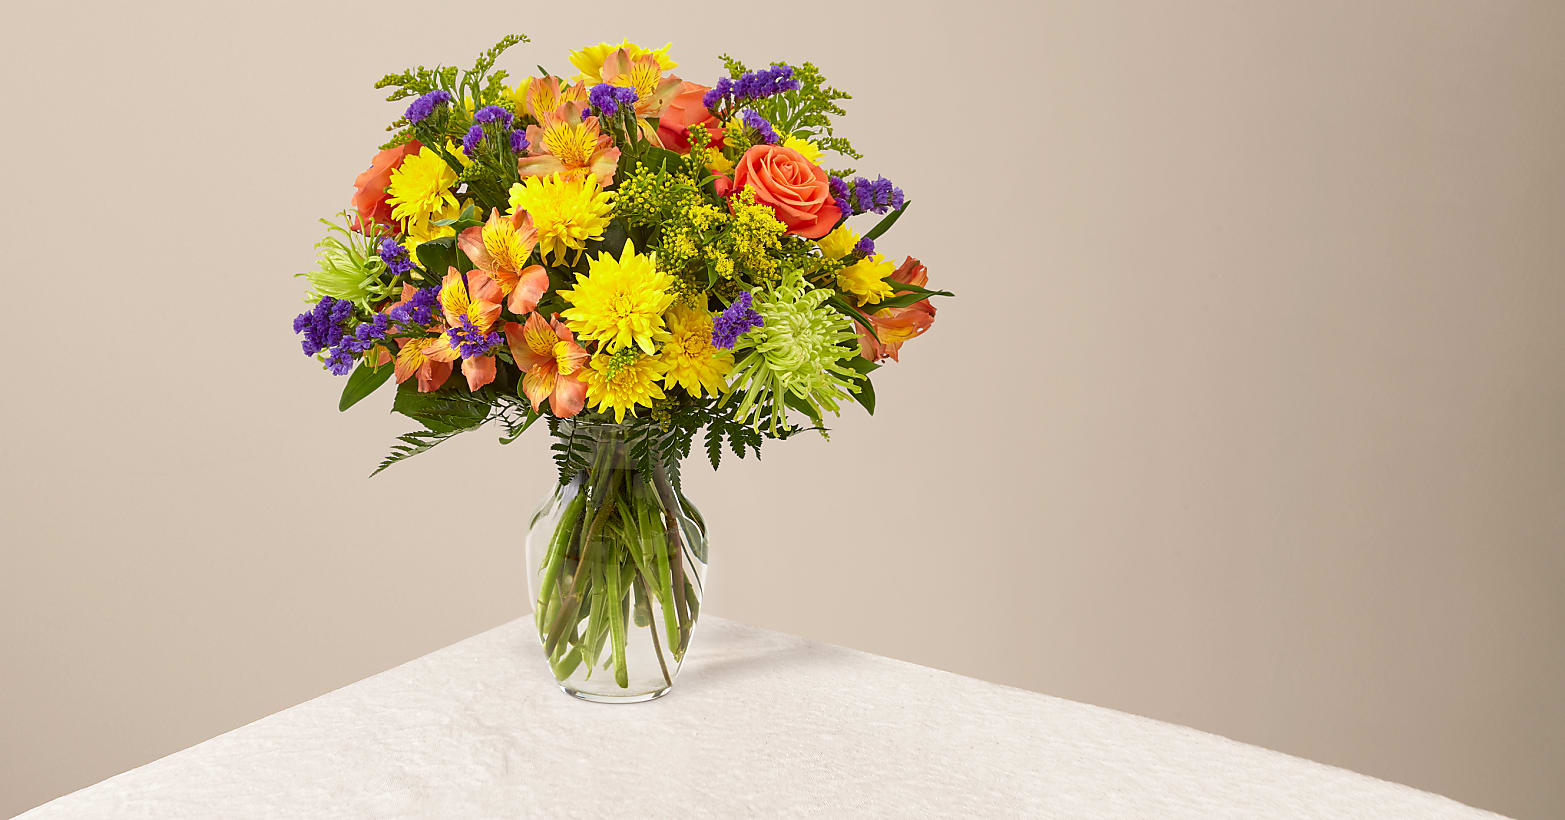 Marmalade Skies Bouquet - Image 1 Of 4